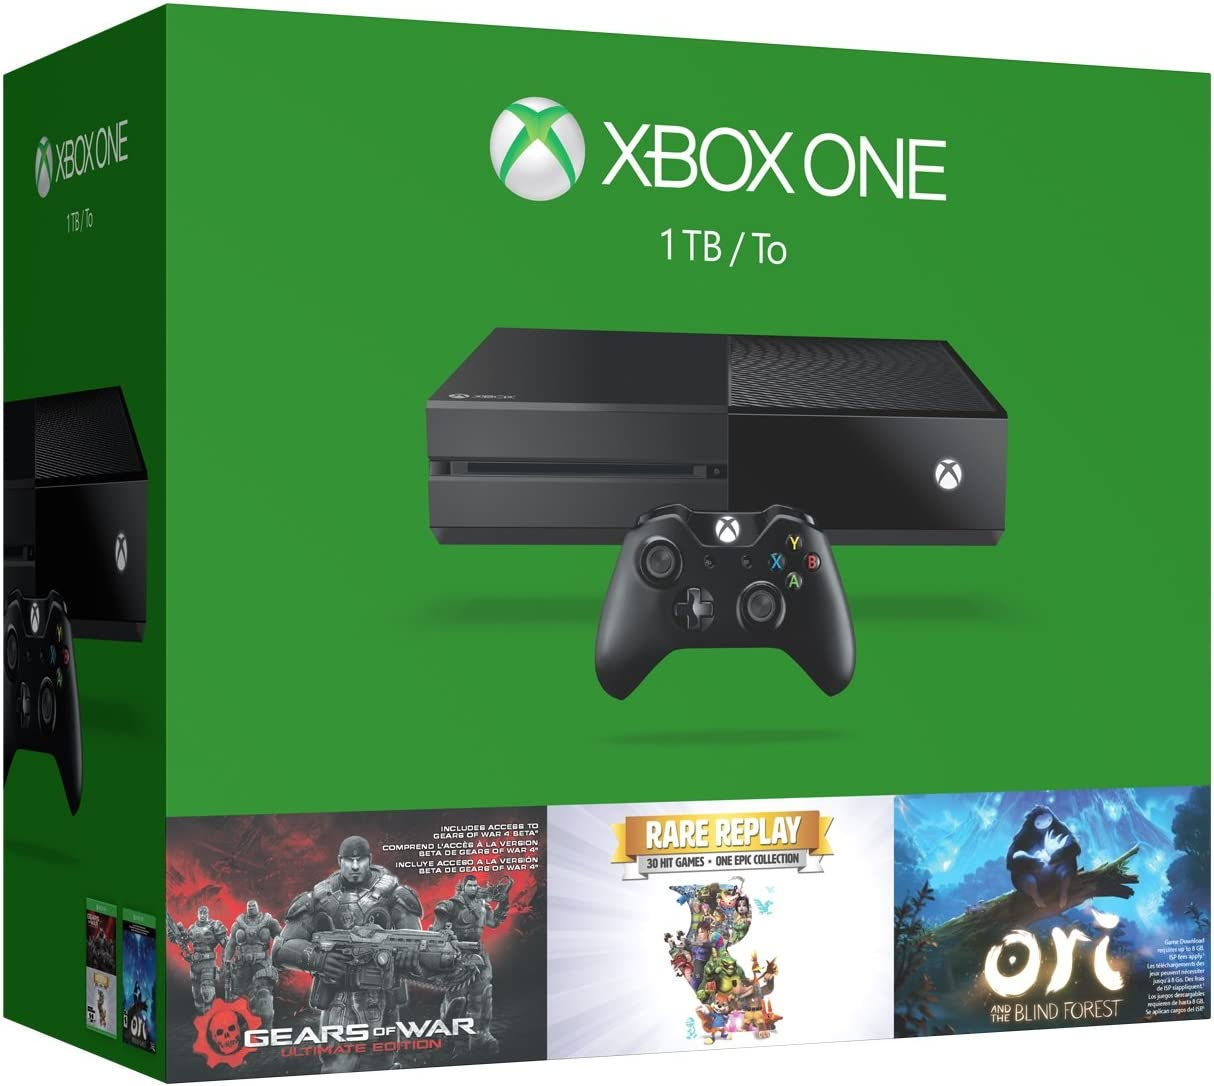 Xbox One 1TB Console – 3 Games Holiday Bundle Gears of War Ultimate Edition Rare Replay Ori and the Blind Forest